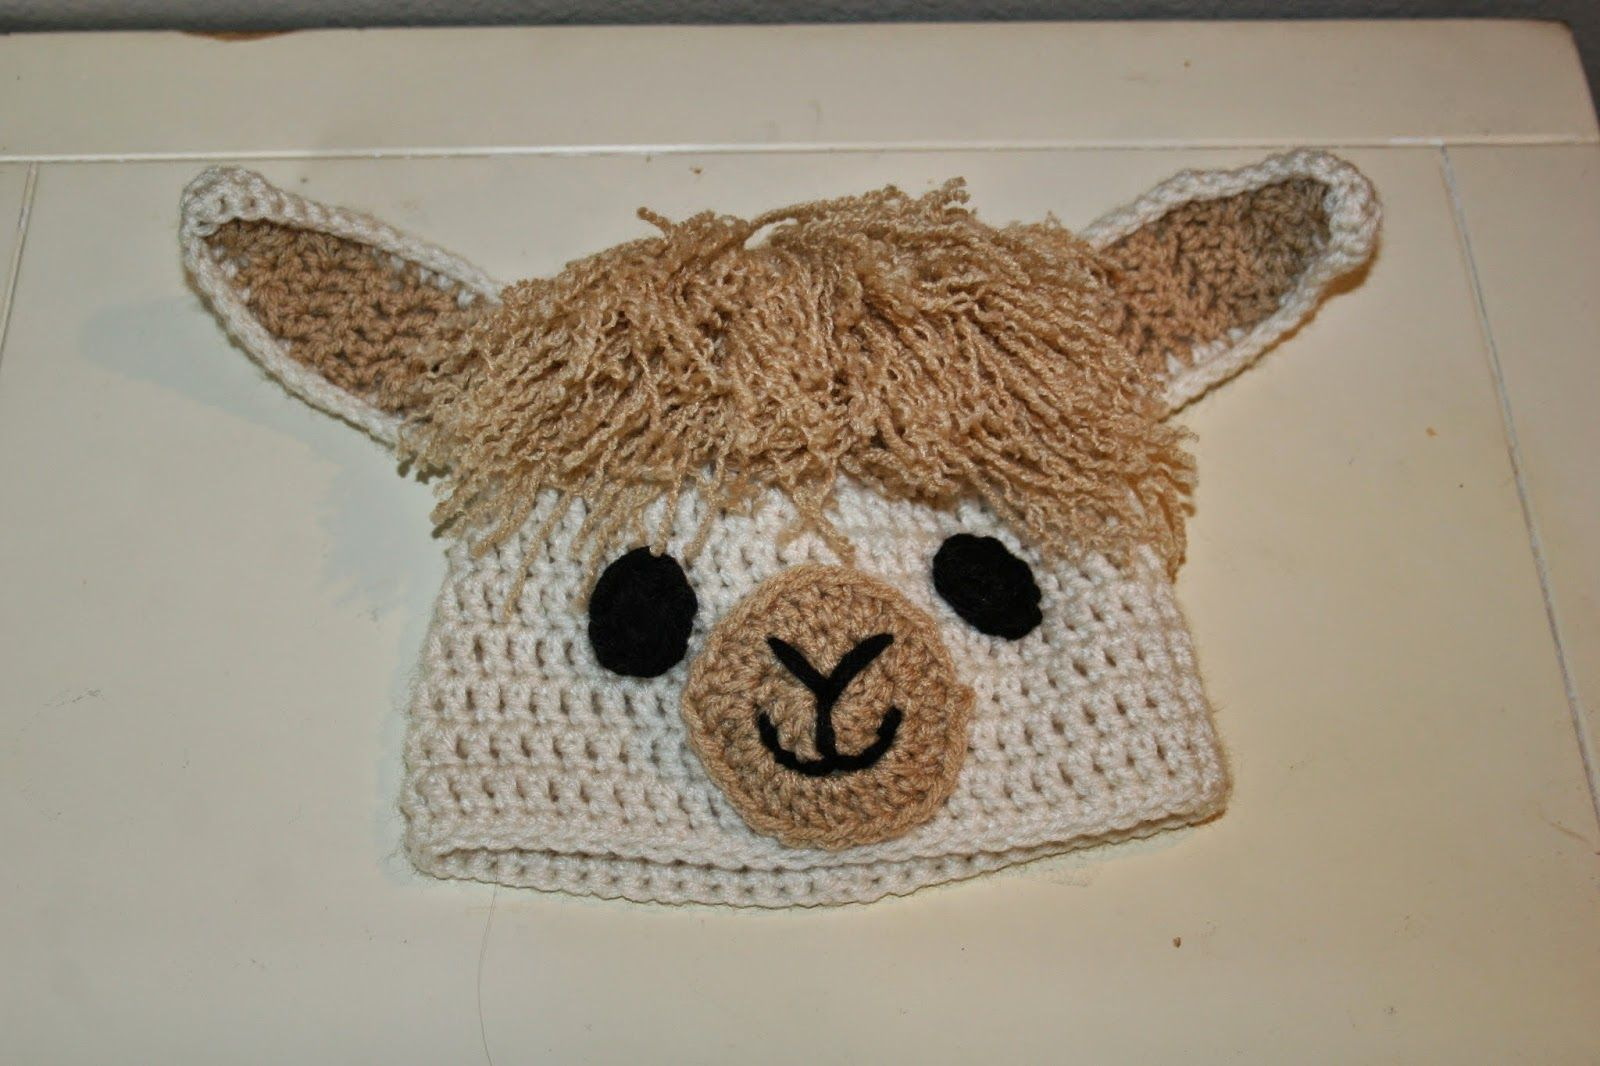 One of my friends decided to dress up her baby girl as a llama for ...